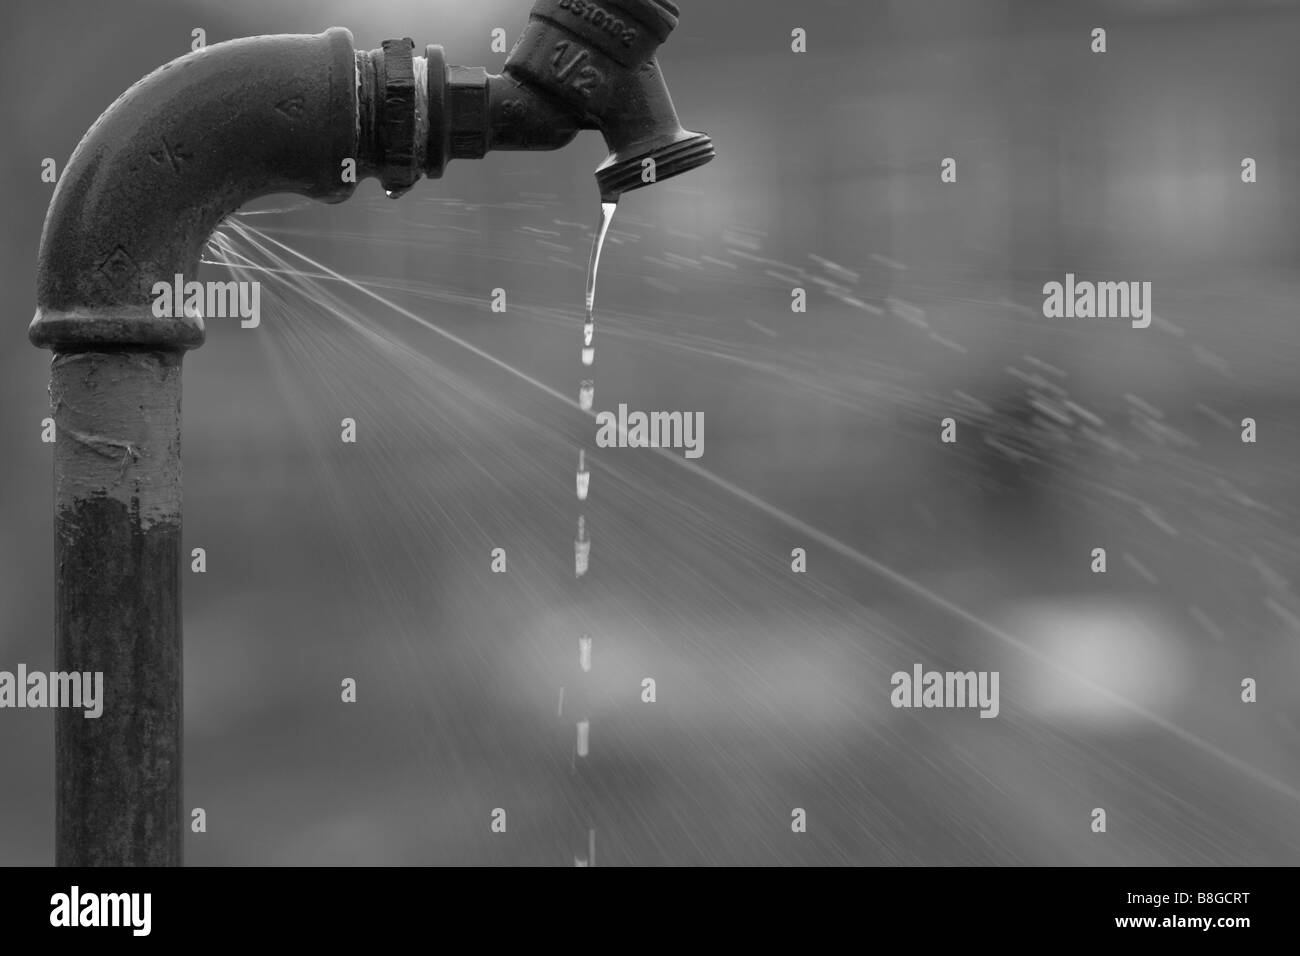 A leaky outside faucet Stock Photo: 22488924 - Alamy